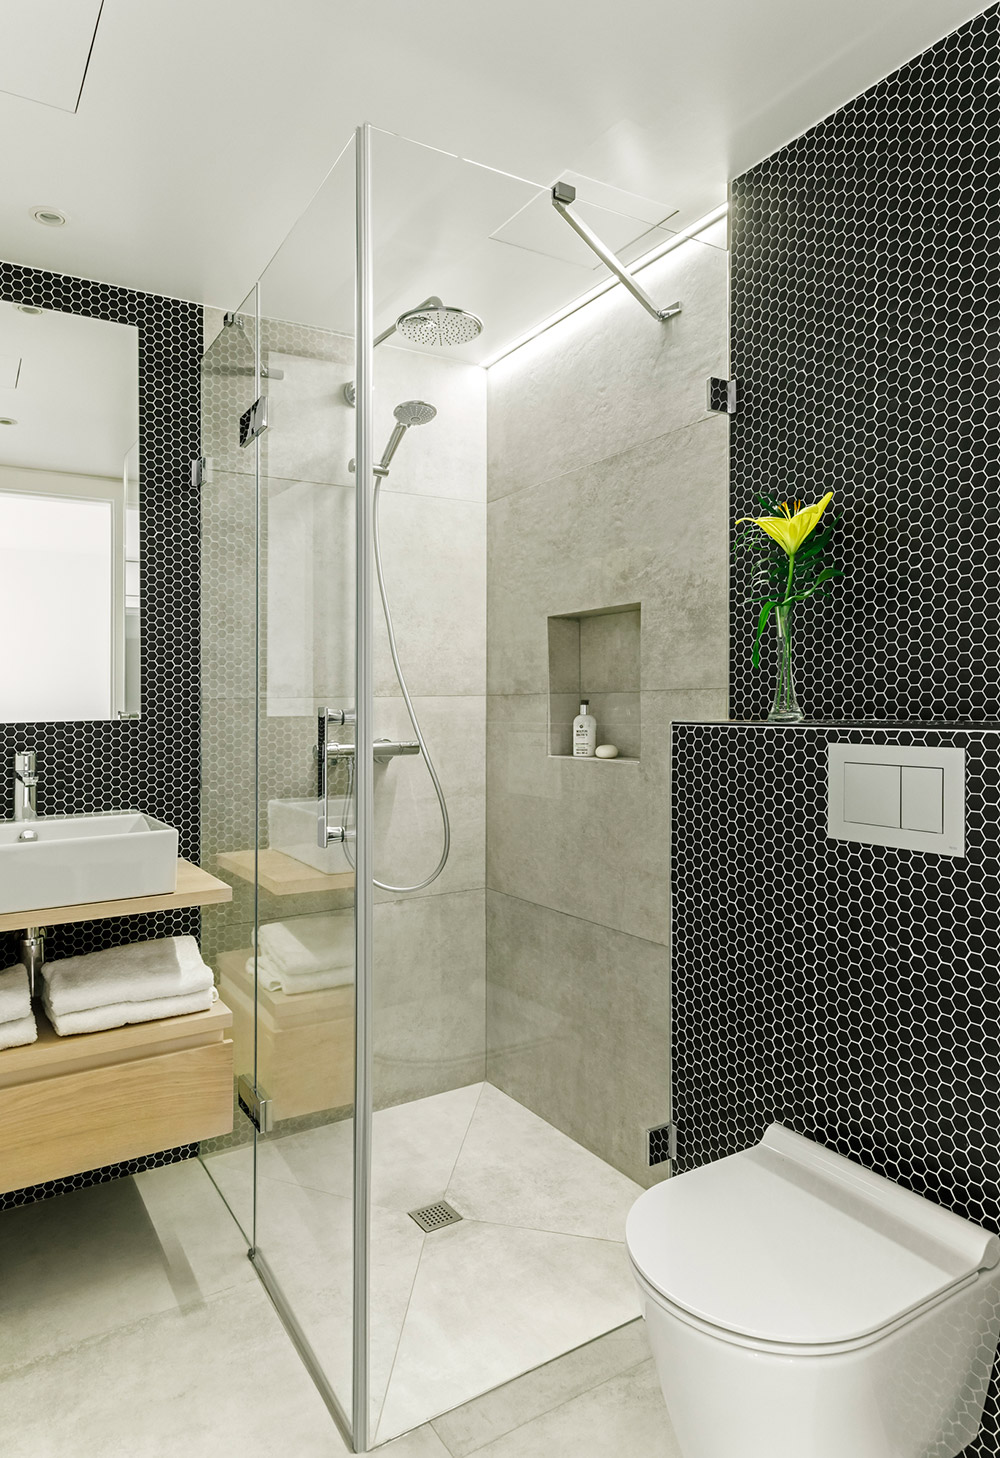 La Escala bathroom with black hexagonal mosaic tiles